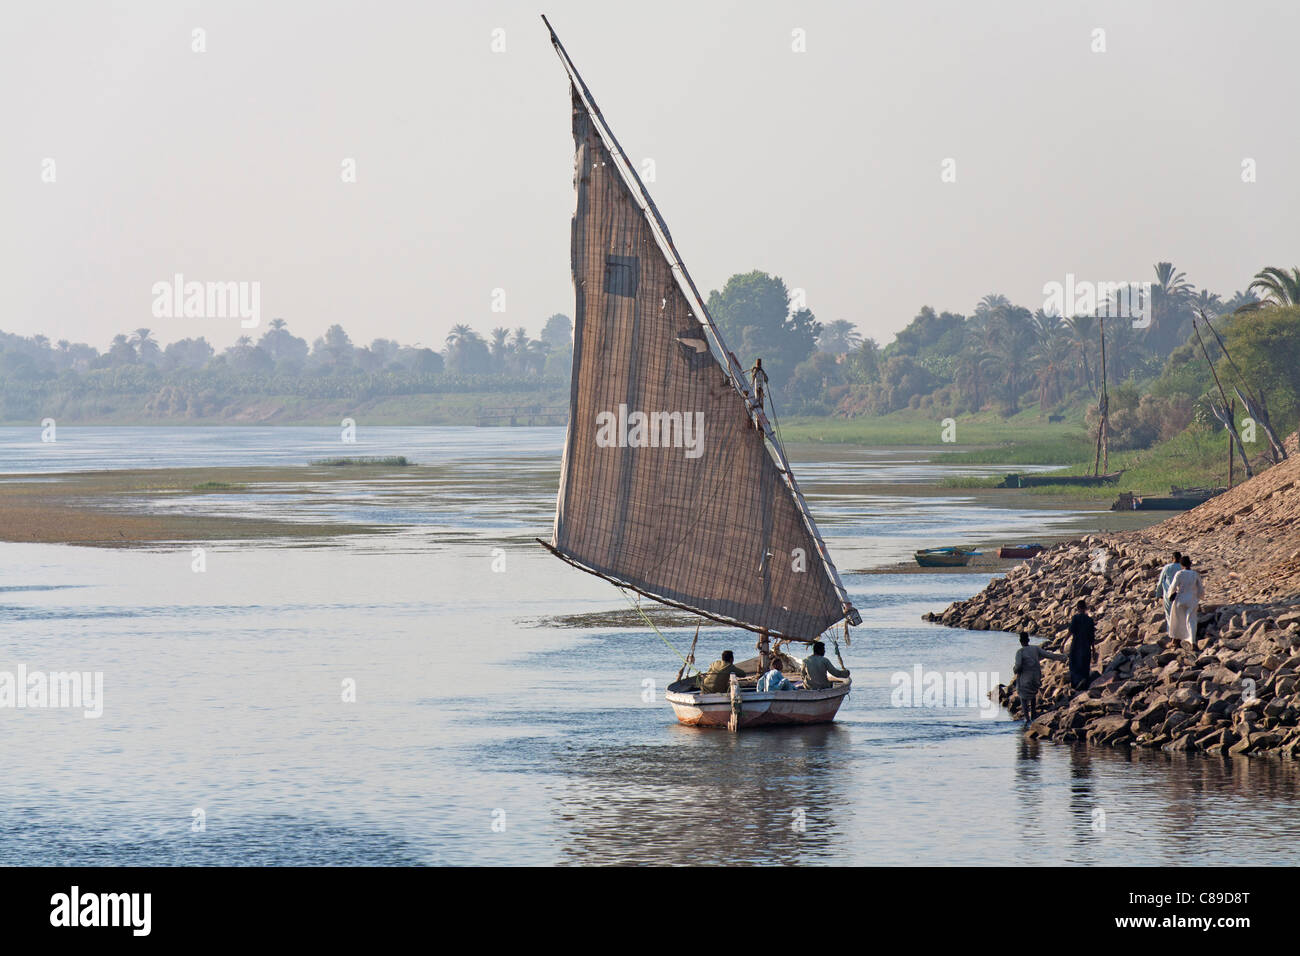 Nile felluca arriving in shallow water to a spit of land with four men running to meet it, palms and trees in distant - Stock Image